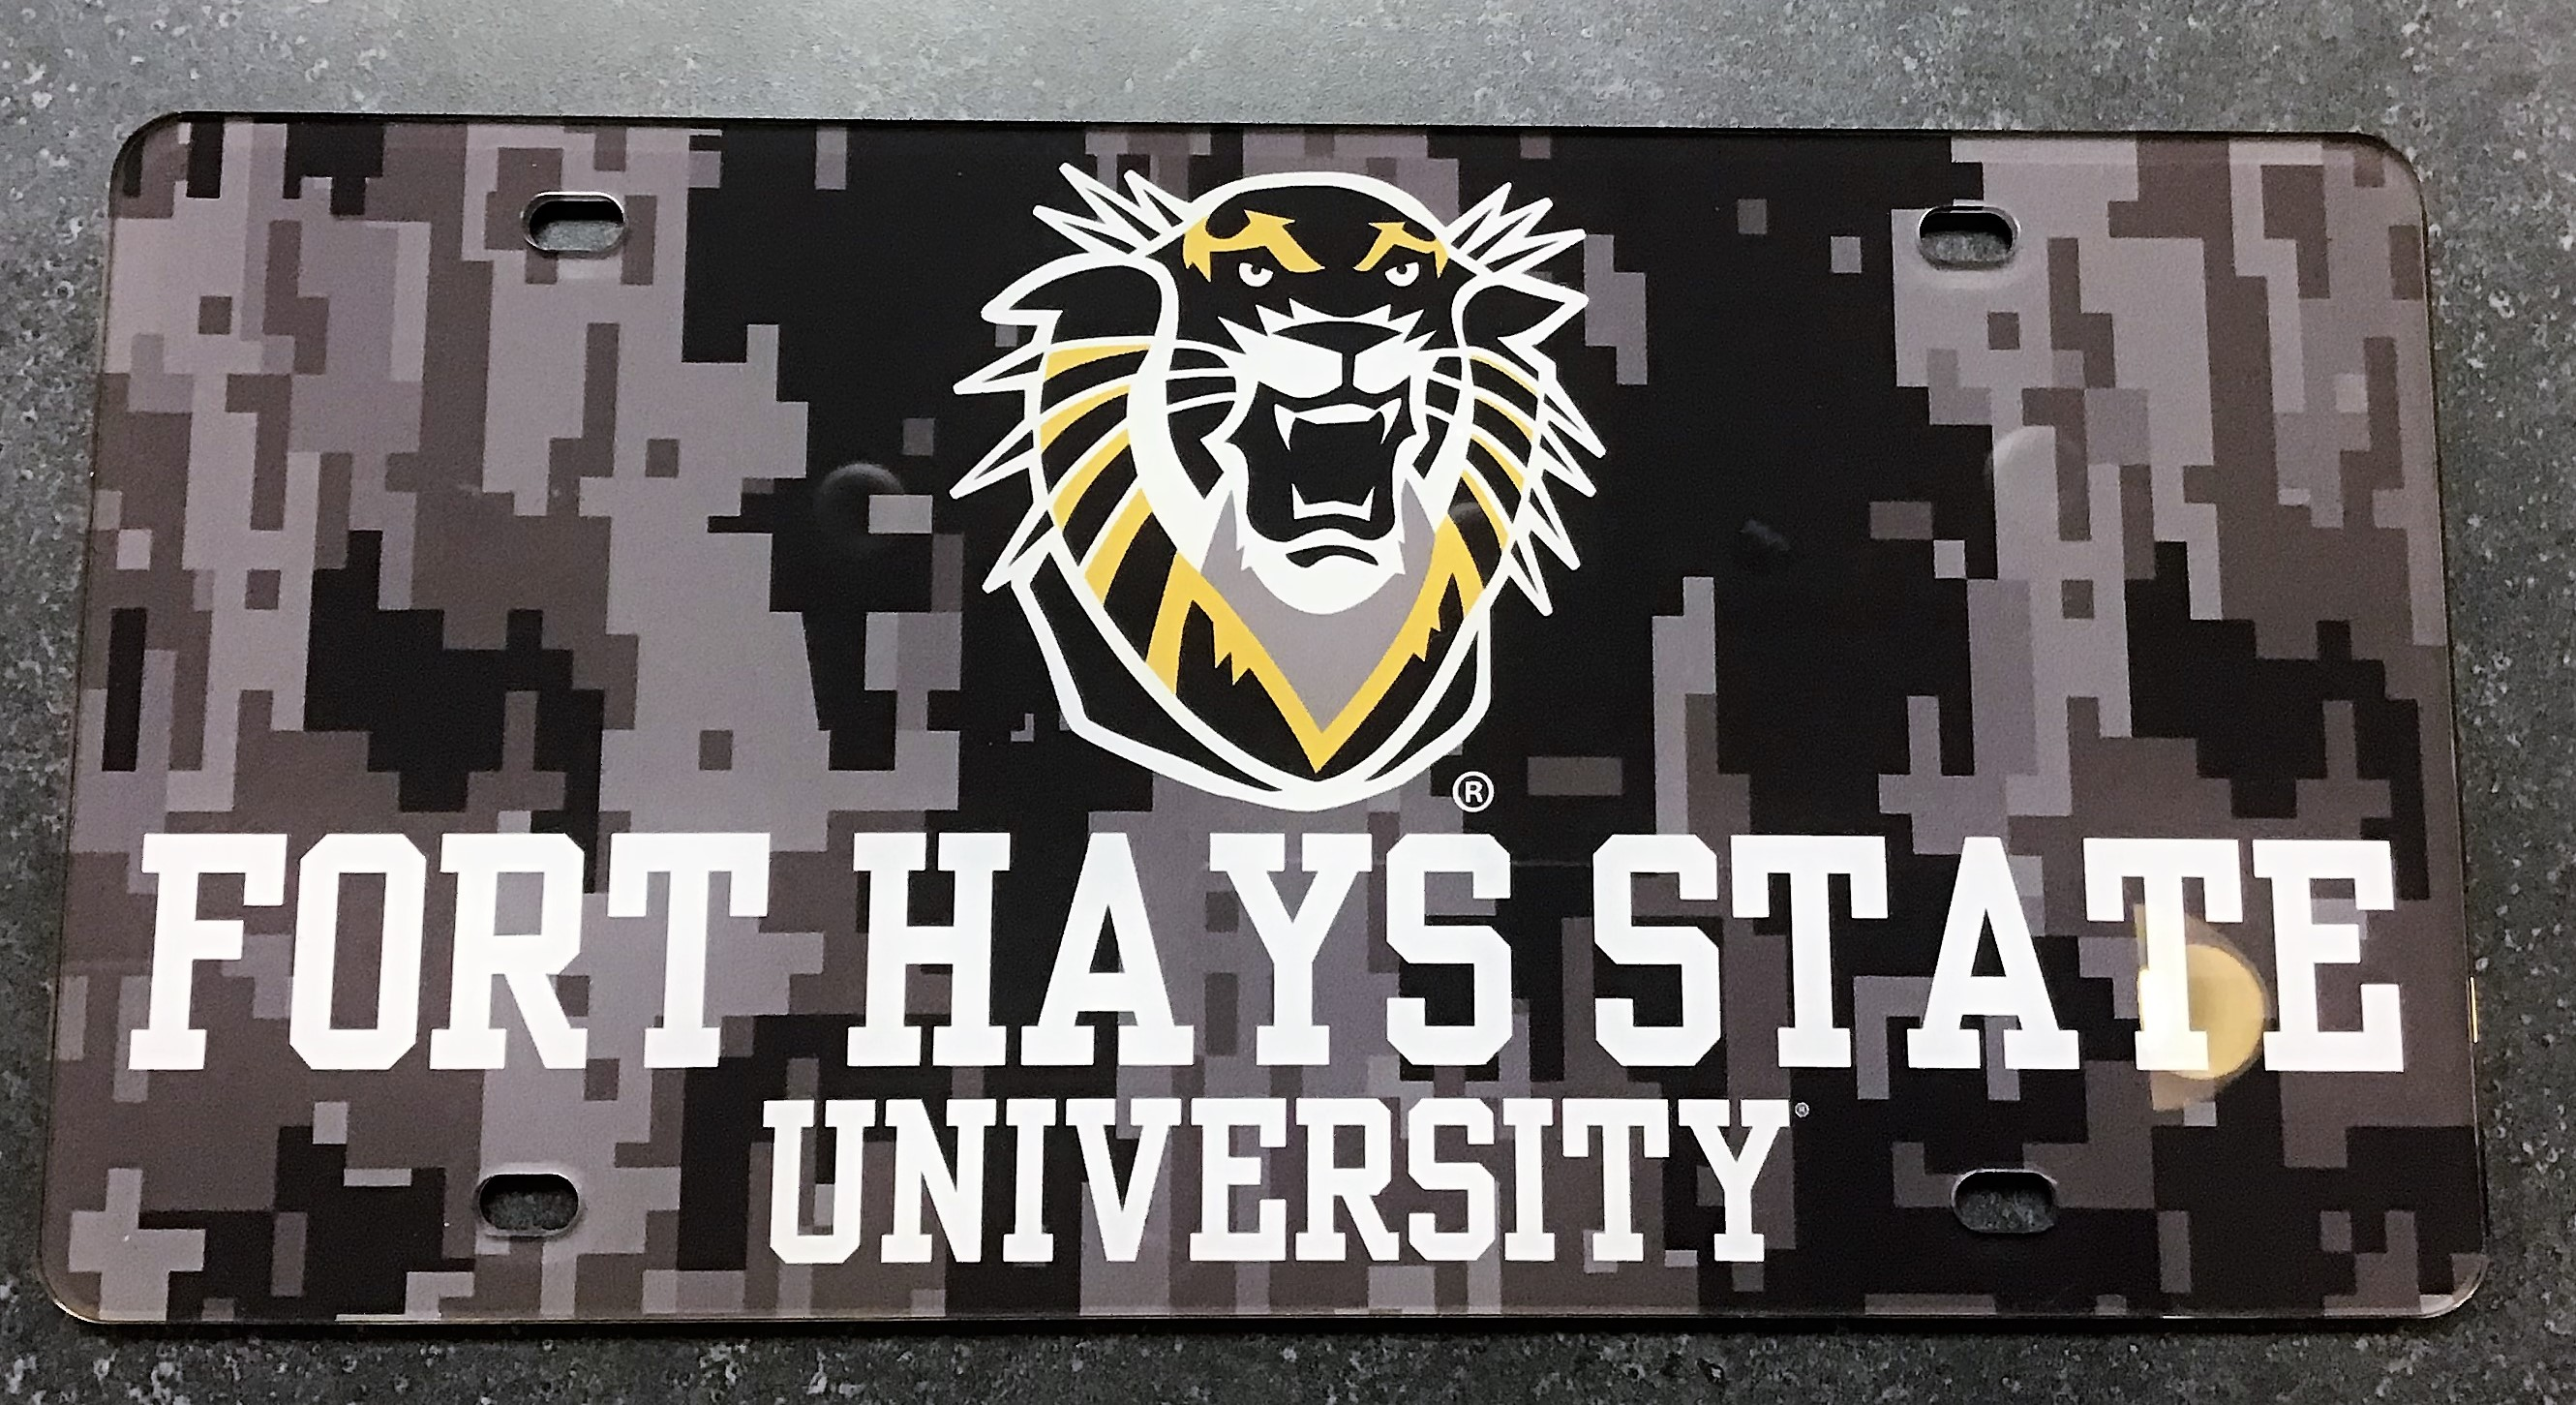 Image for the License Plates FHSU Tiger product